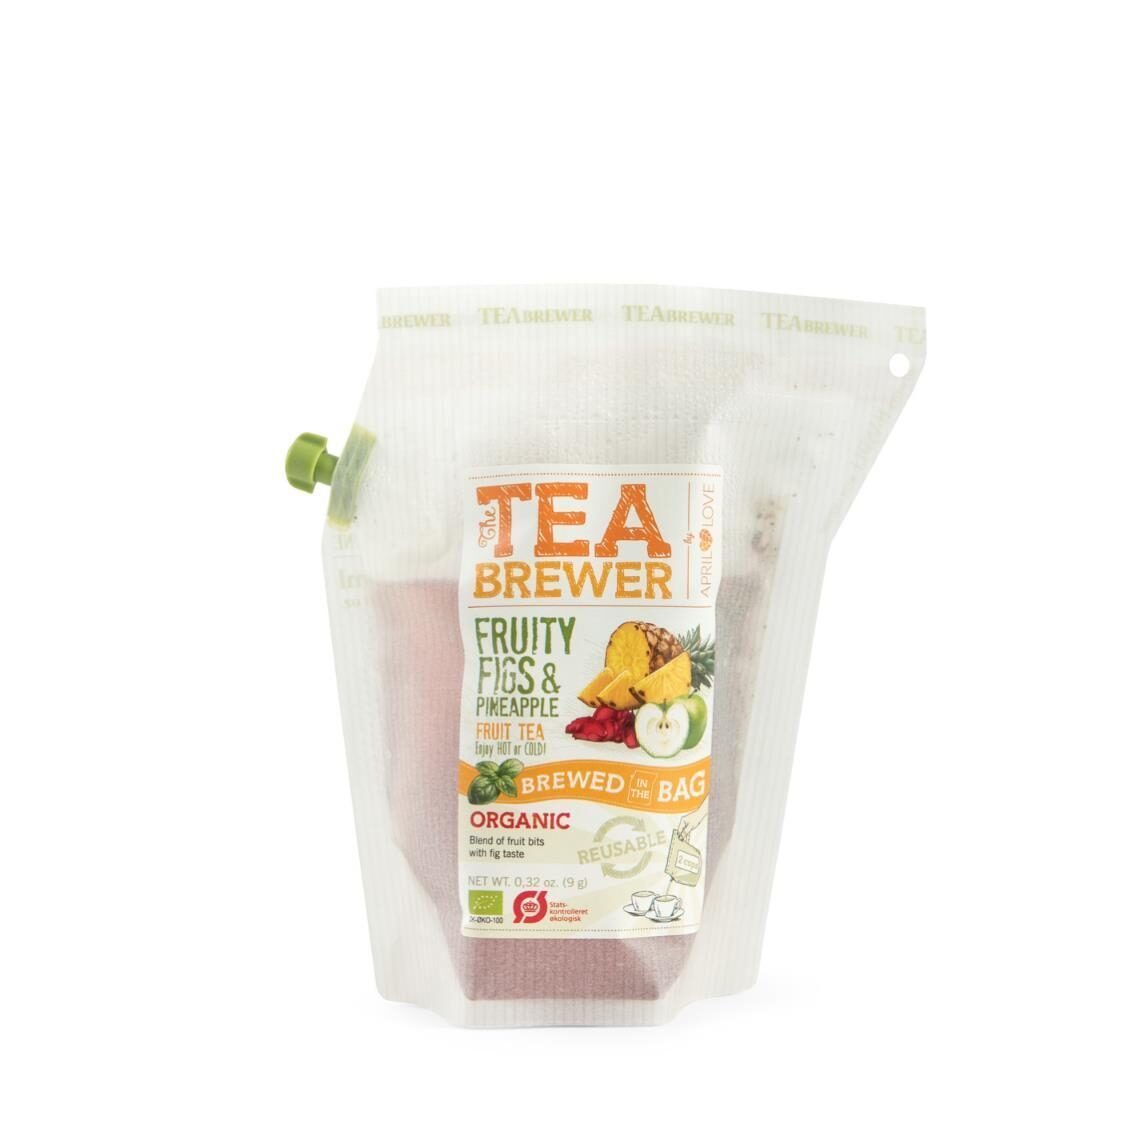 Tea Brewer - Fruity Figs  Pineapple 9g